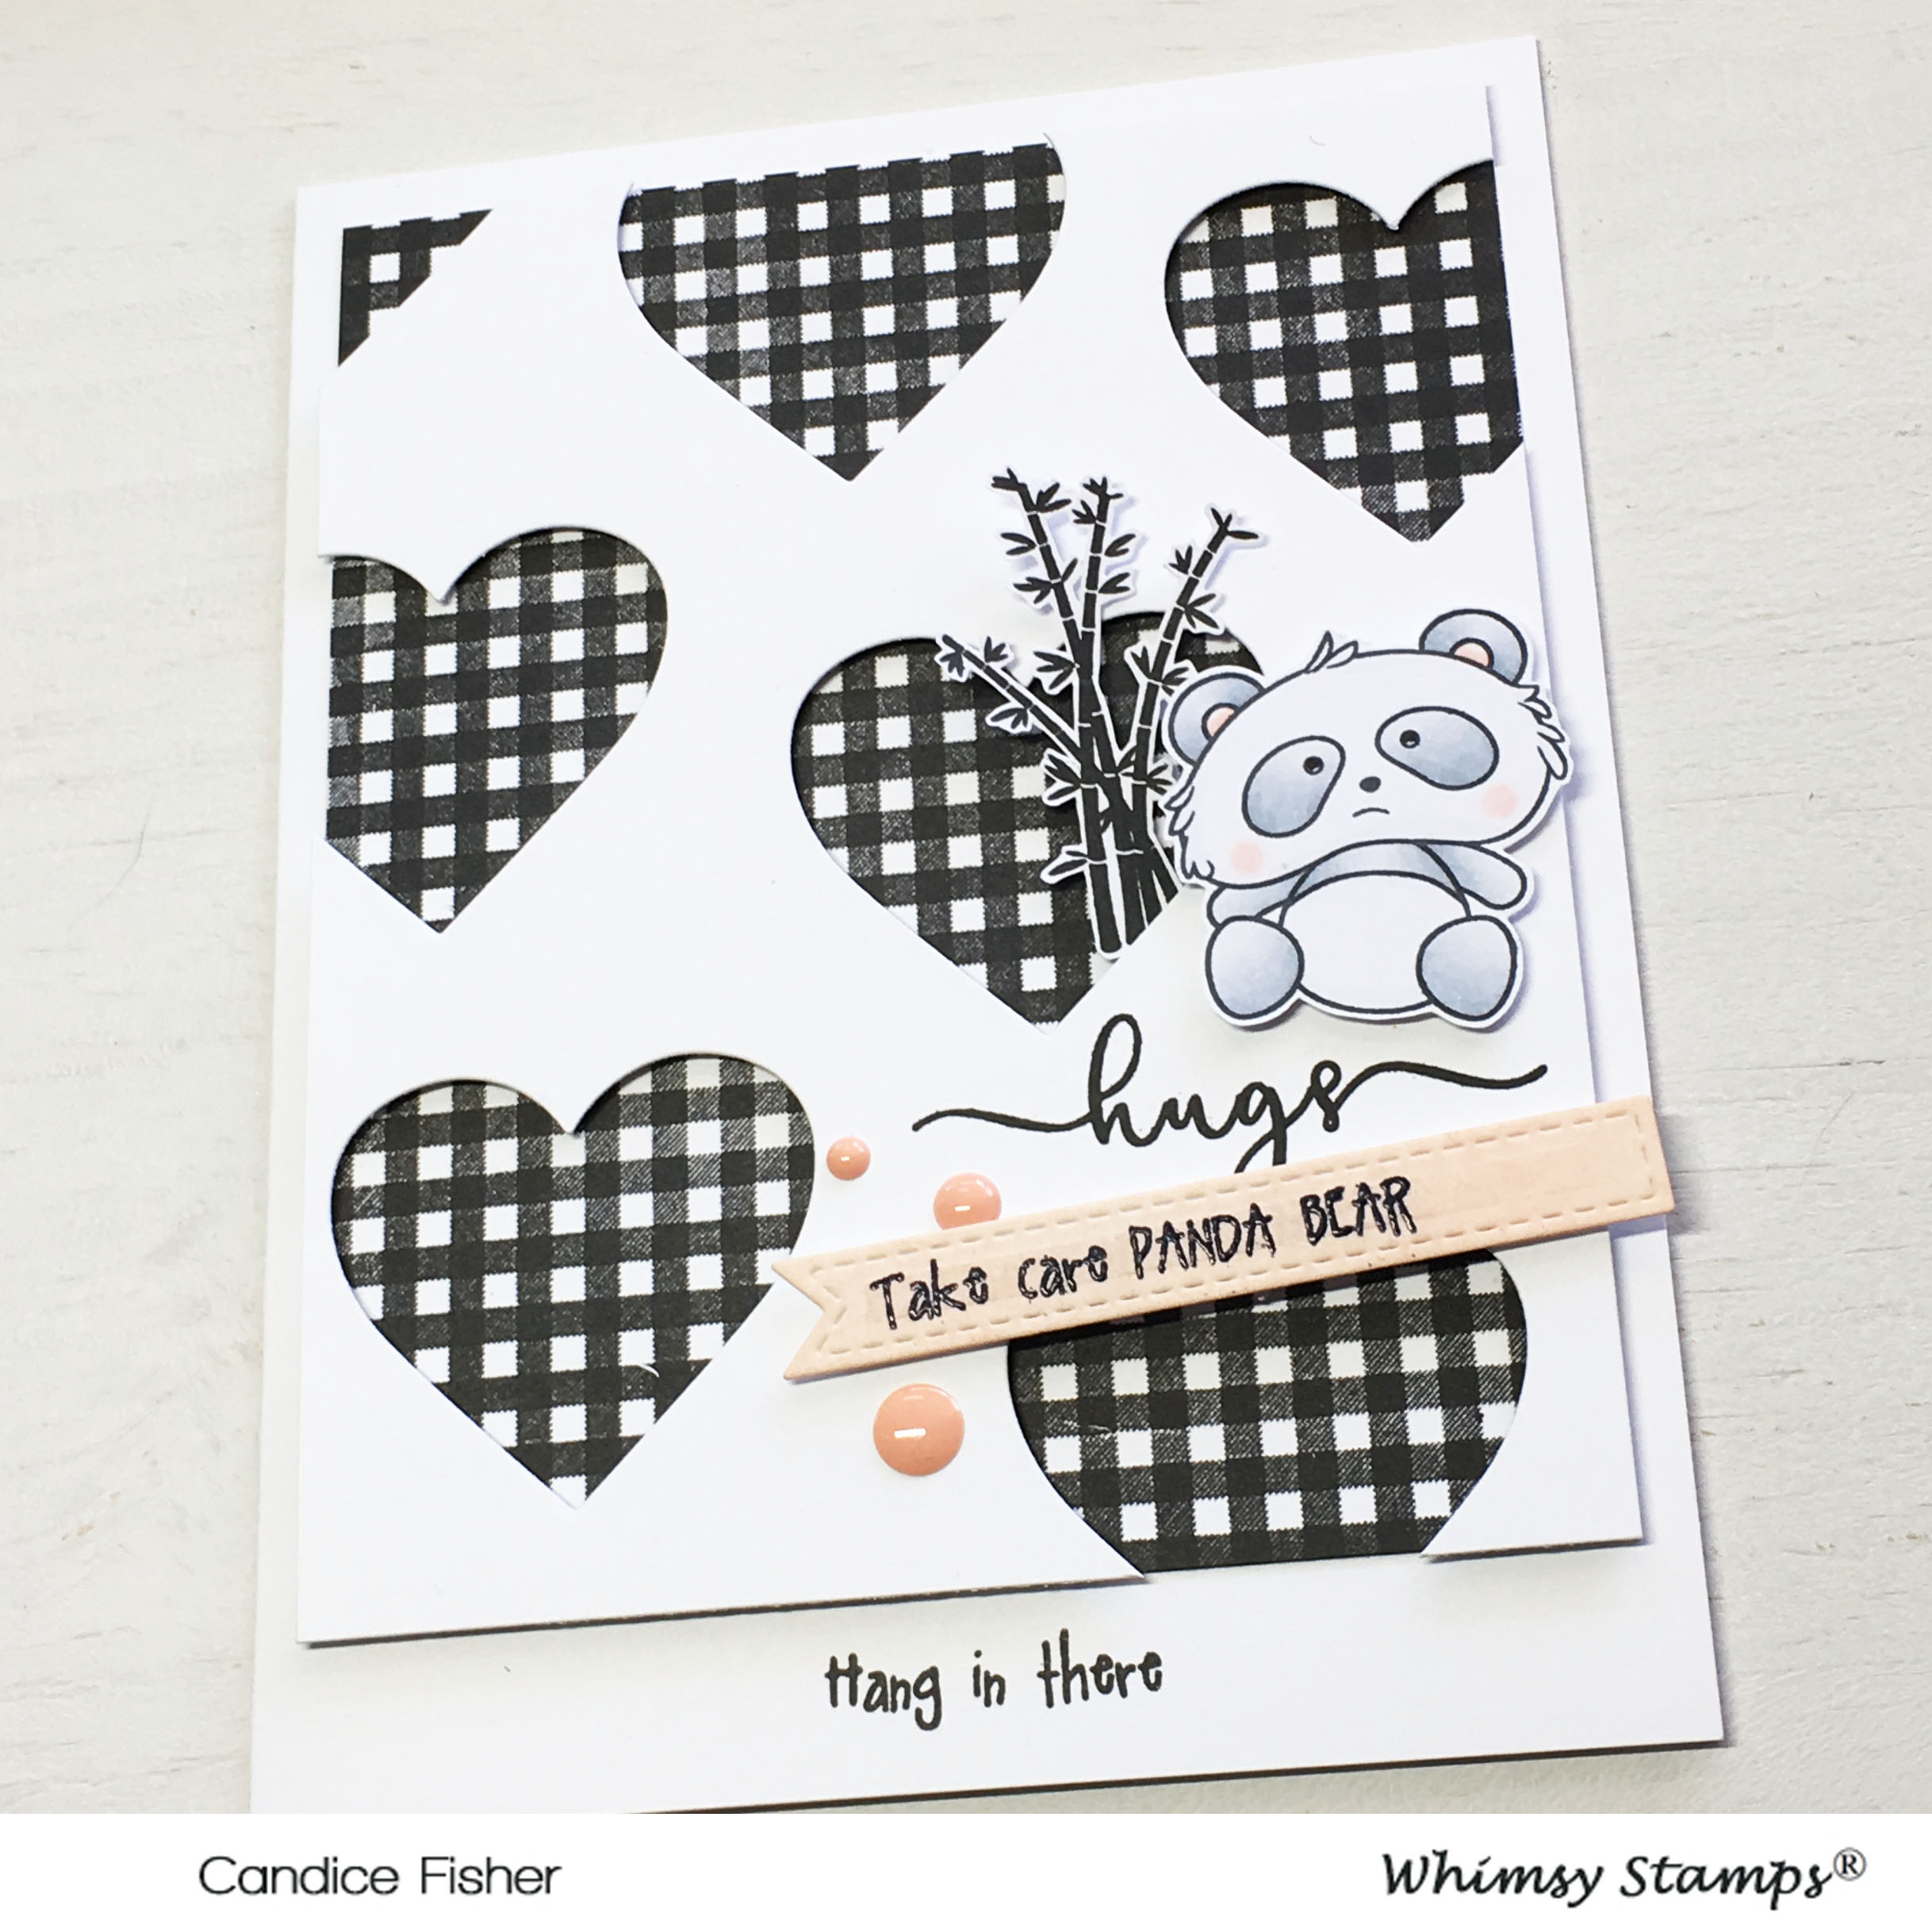 GD whimsy stamps card 3 side